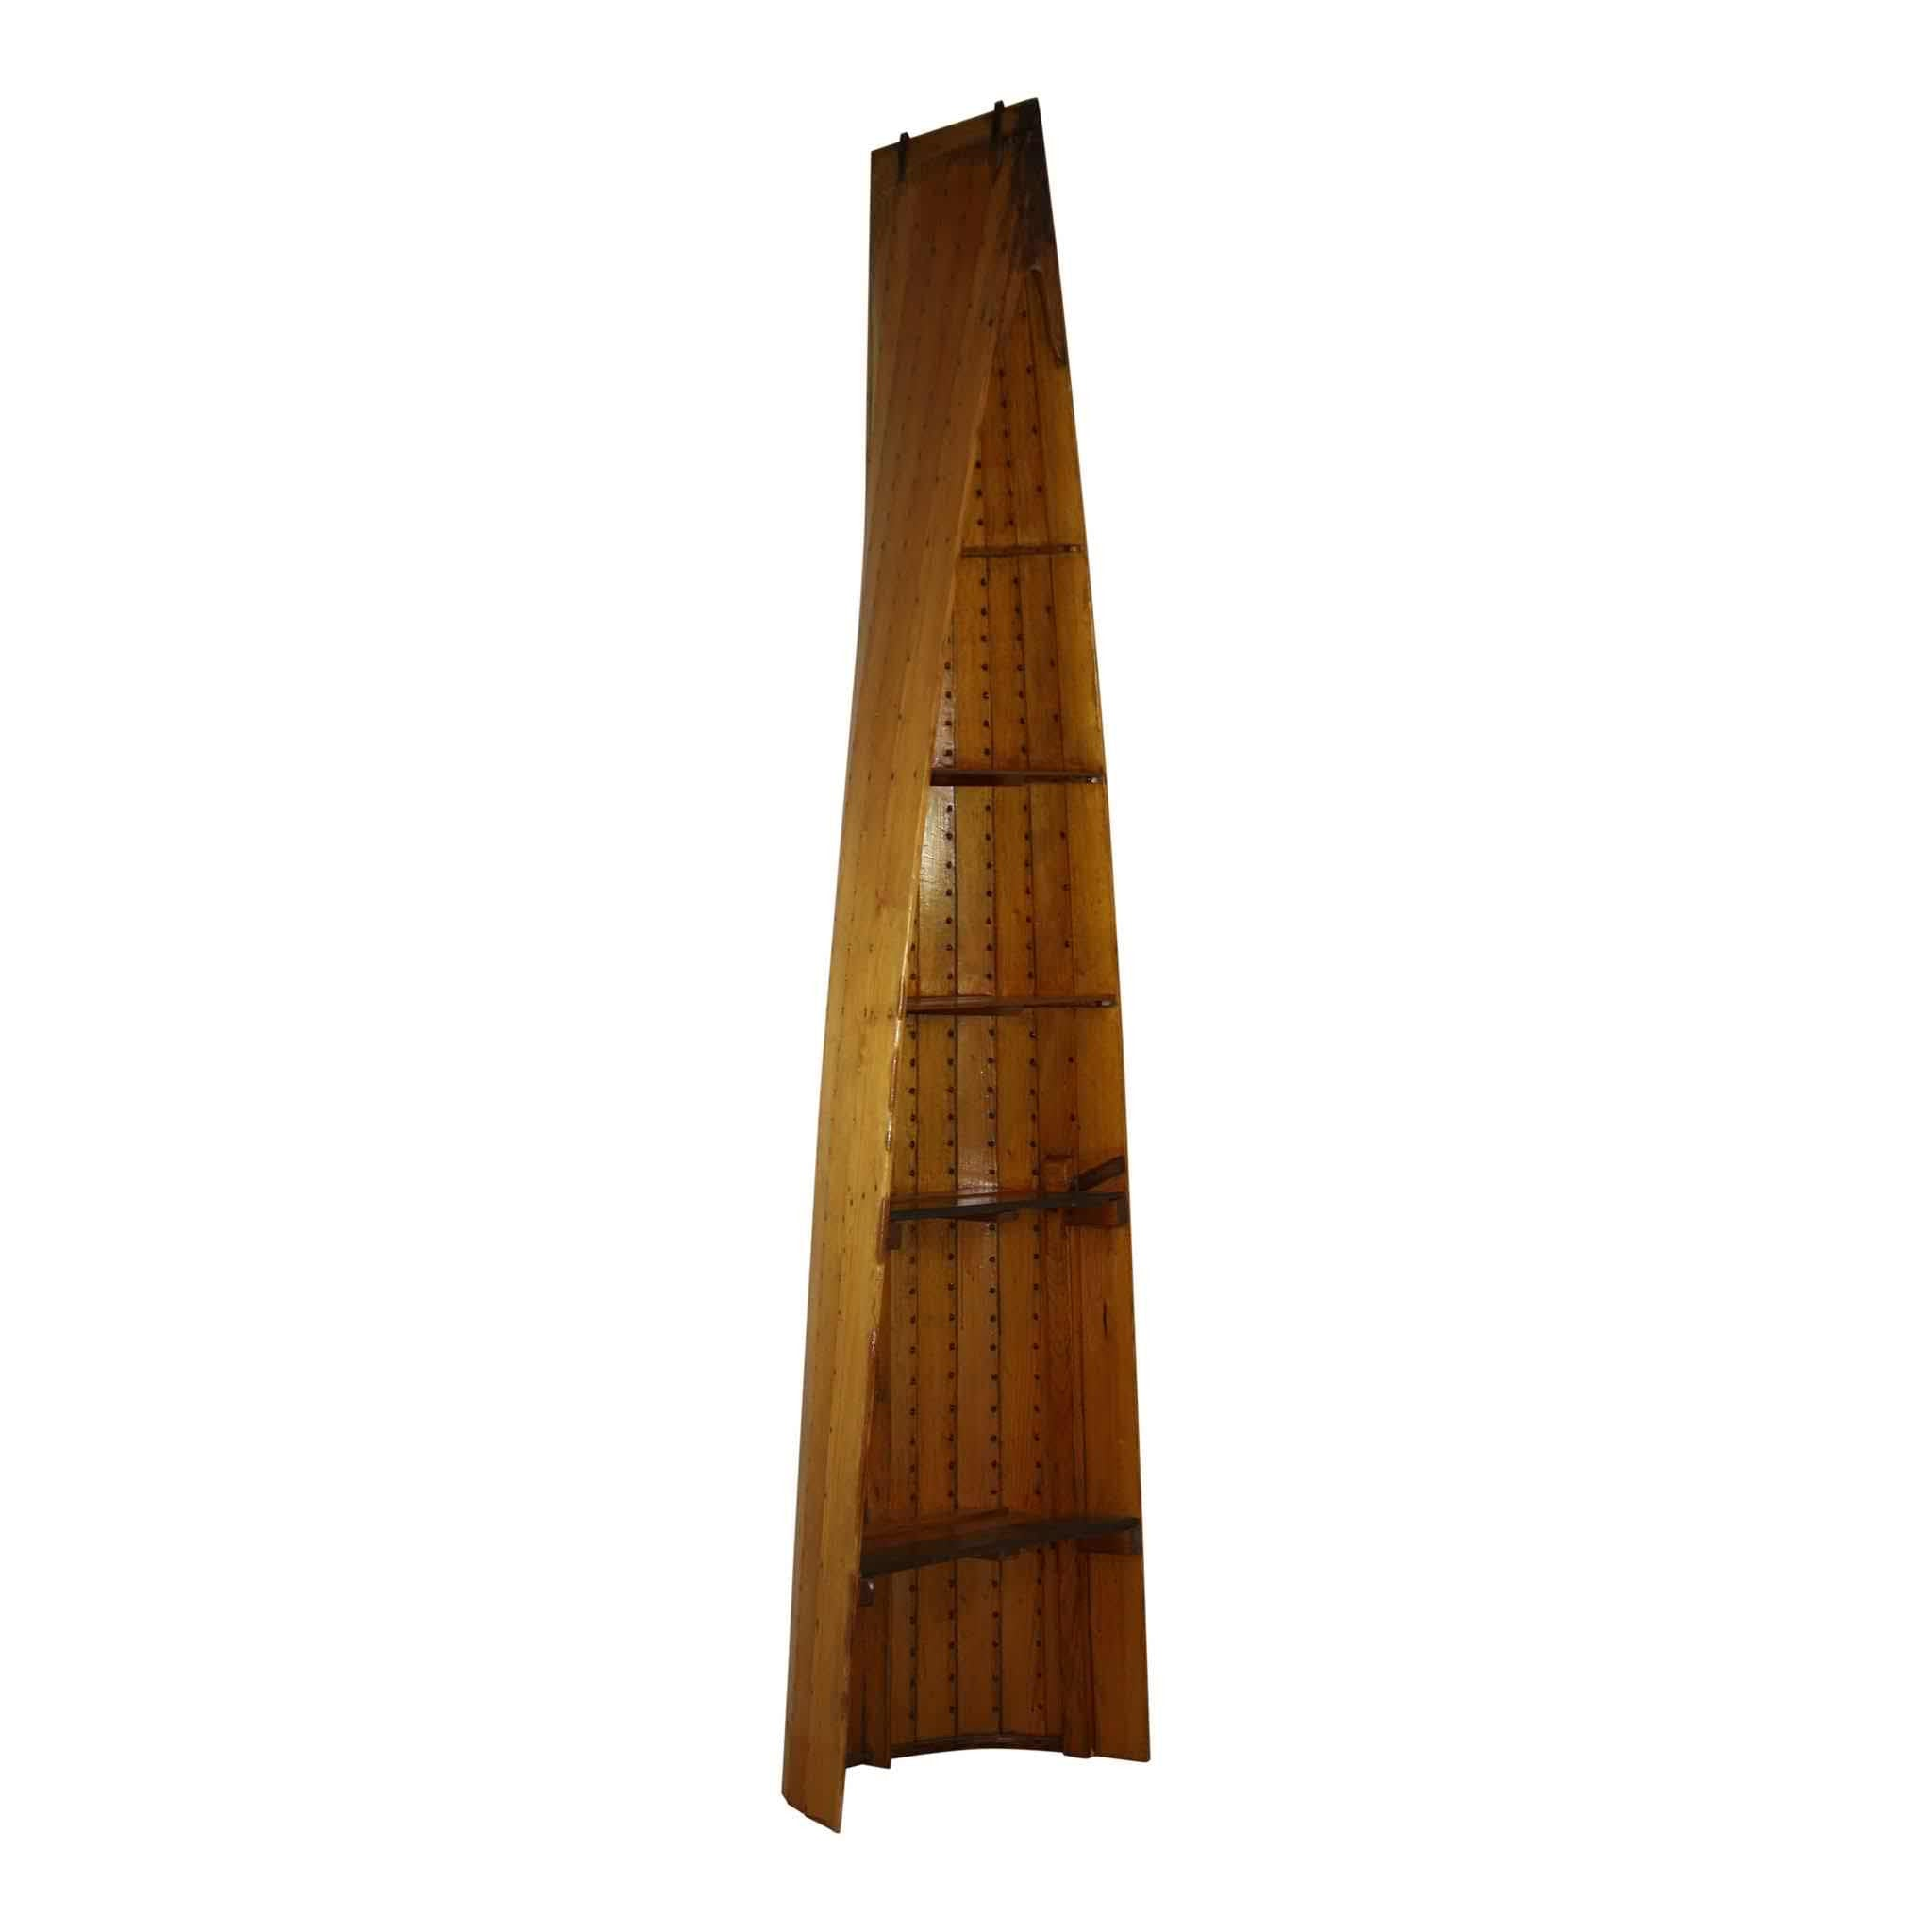 Wood Canoe Bookshelf